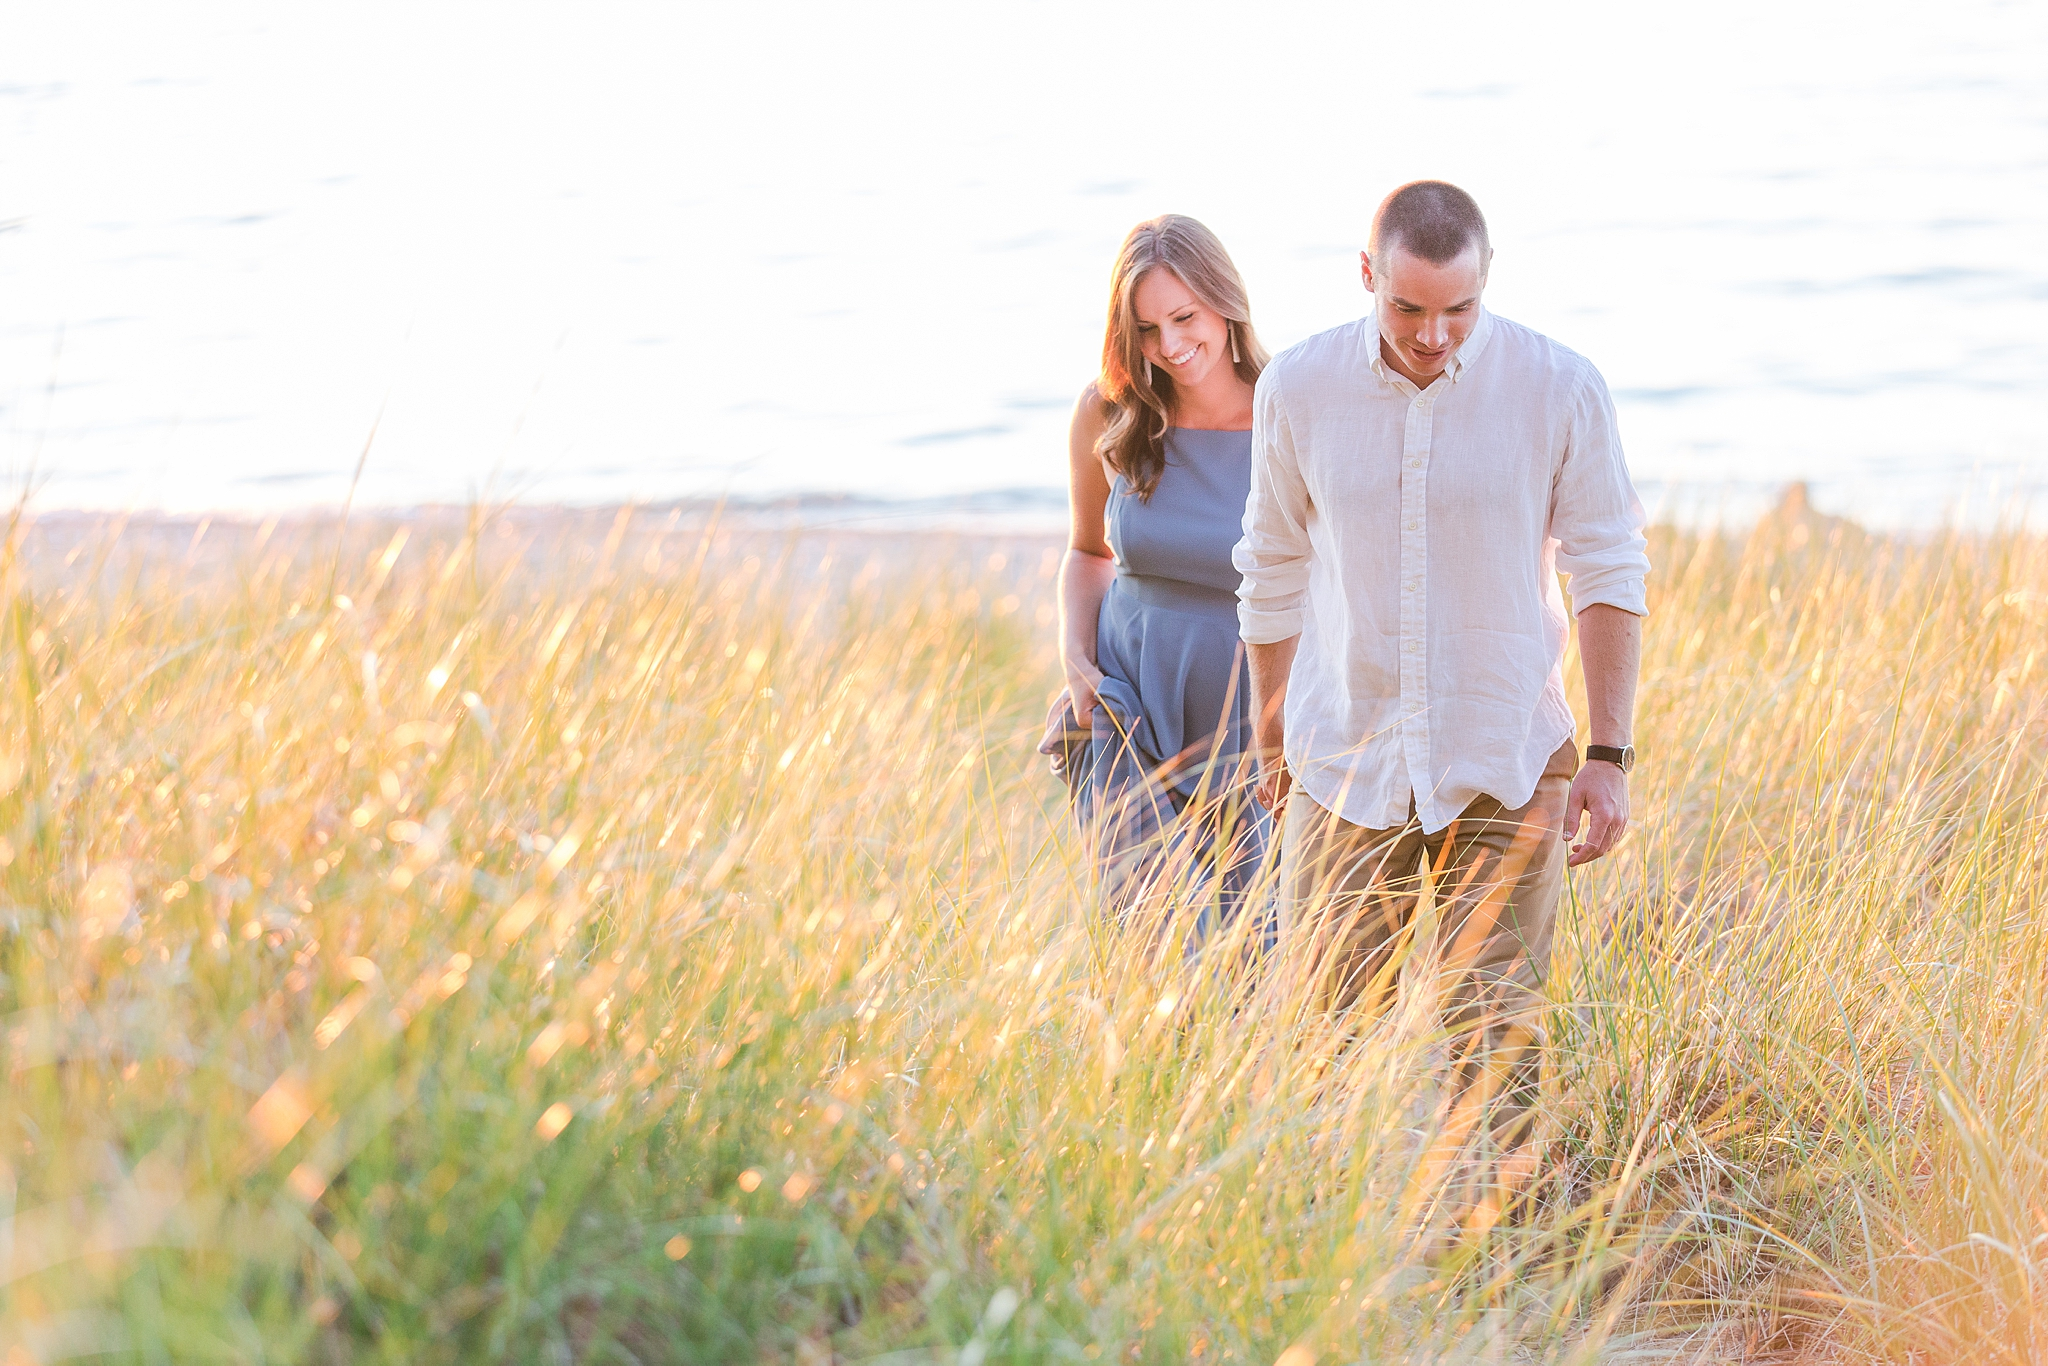 waterfront-lighthouse-engagement-photography-in-charlevoix-mi-by-courtney-carolyn-photography_0016.jpg